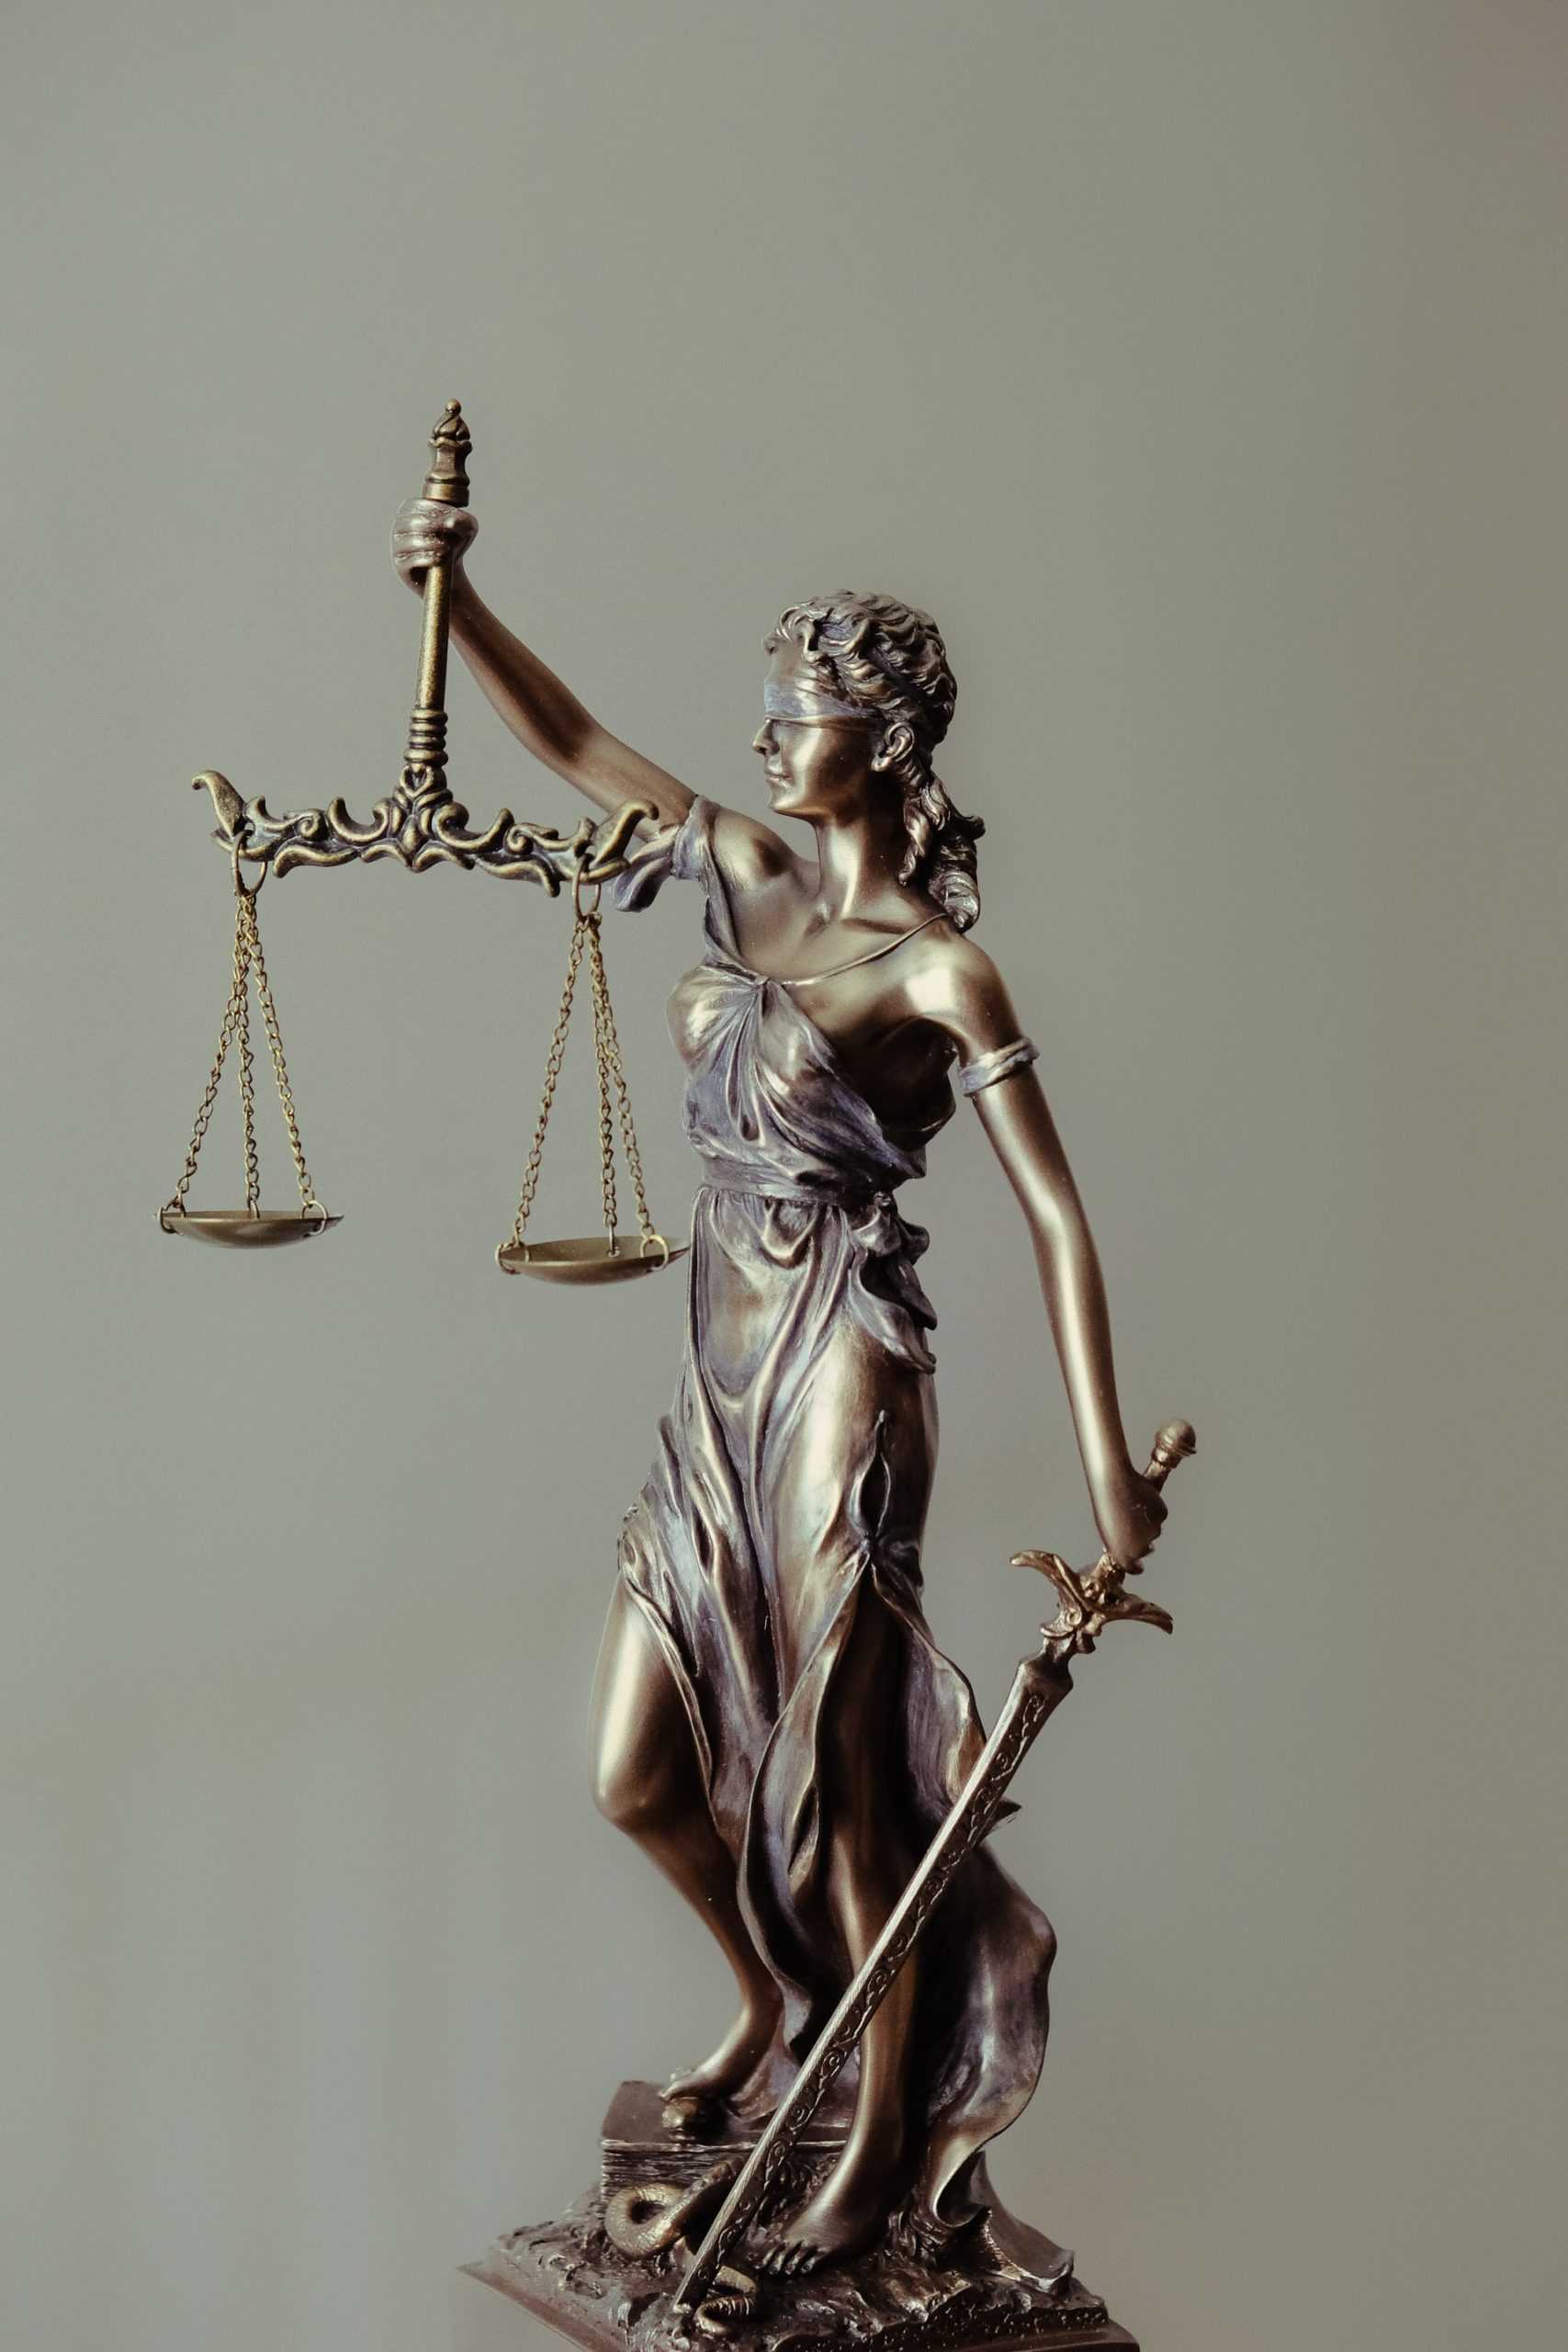 Characteristic Good Lawyer Article Image